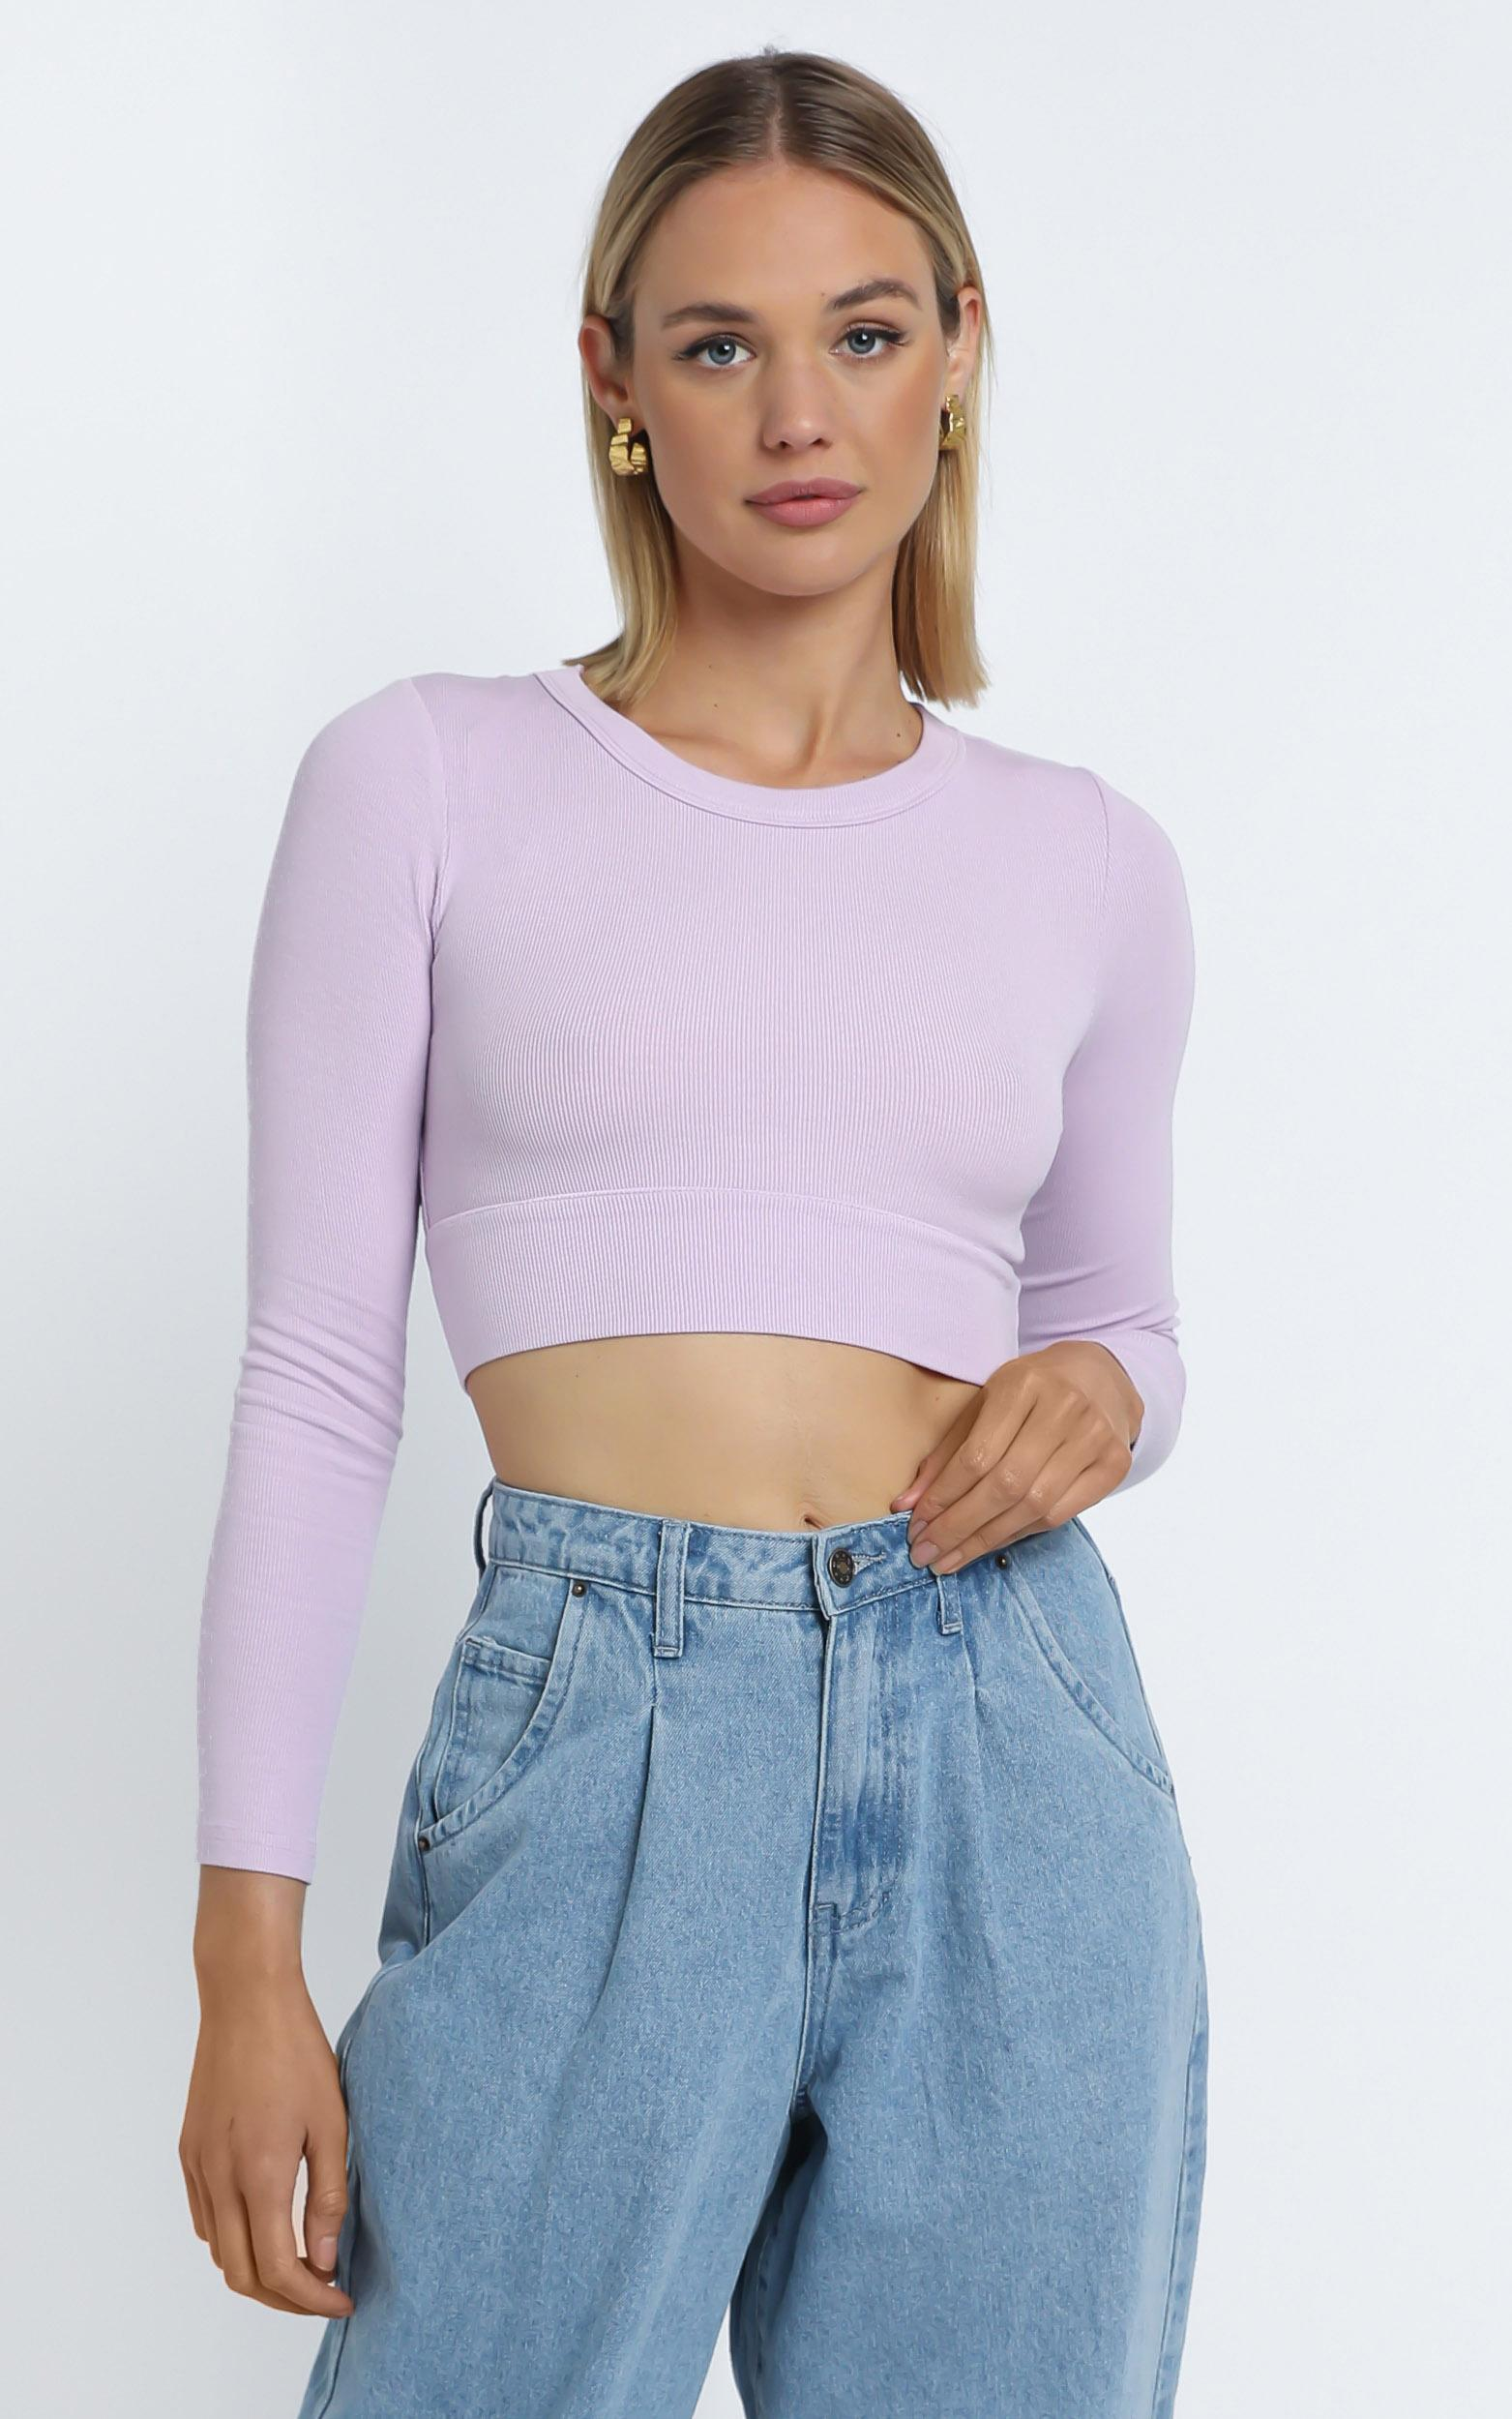 Asher Top in Lilac - 14 (XL), PRP1, hi-res image number null